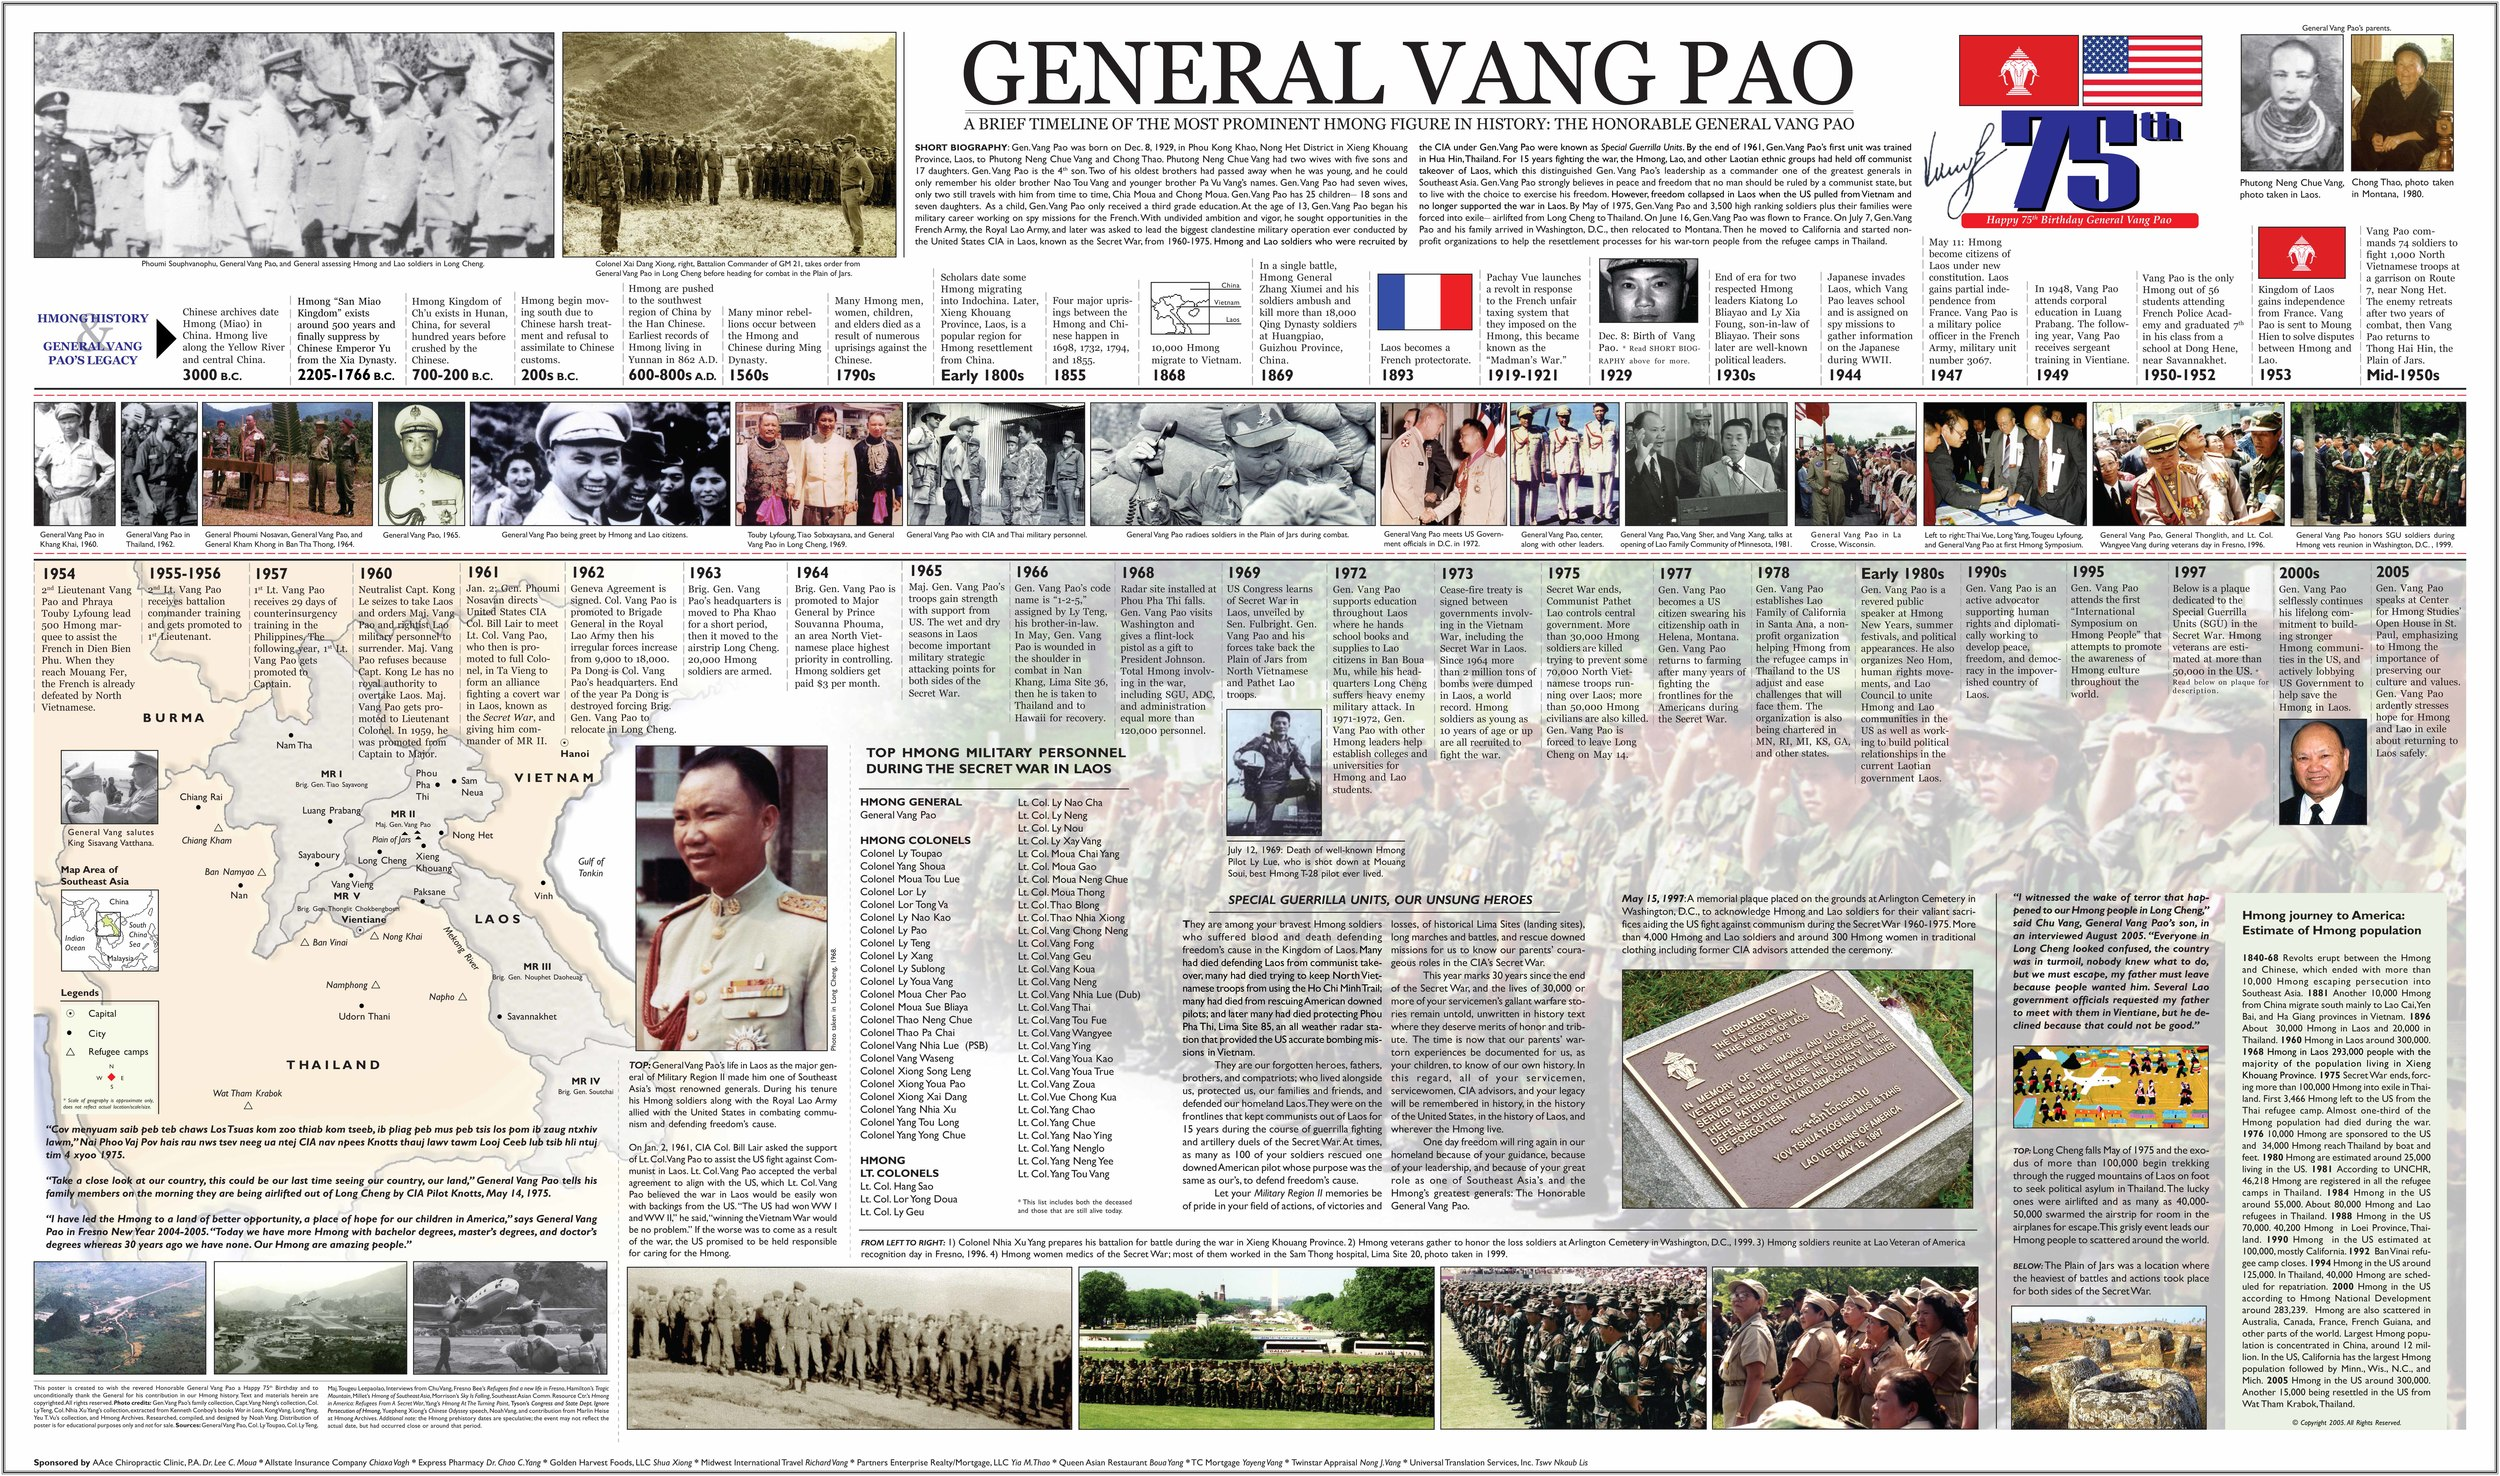 """In 2006, I created this """"General Vang Pao"""" poster as a gift to honor his contribution to our history and people at Prom Center in Oakdale, Minn. Courtesy Noah Vang. Below images of Vang Pao were taken in Padong, Laos, in 1961-62 (from Times Magazine)."""